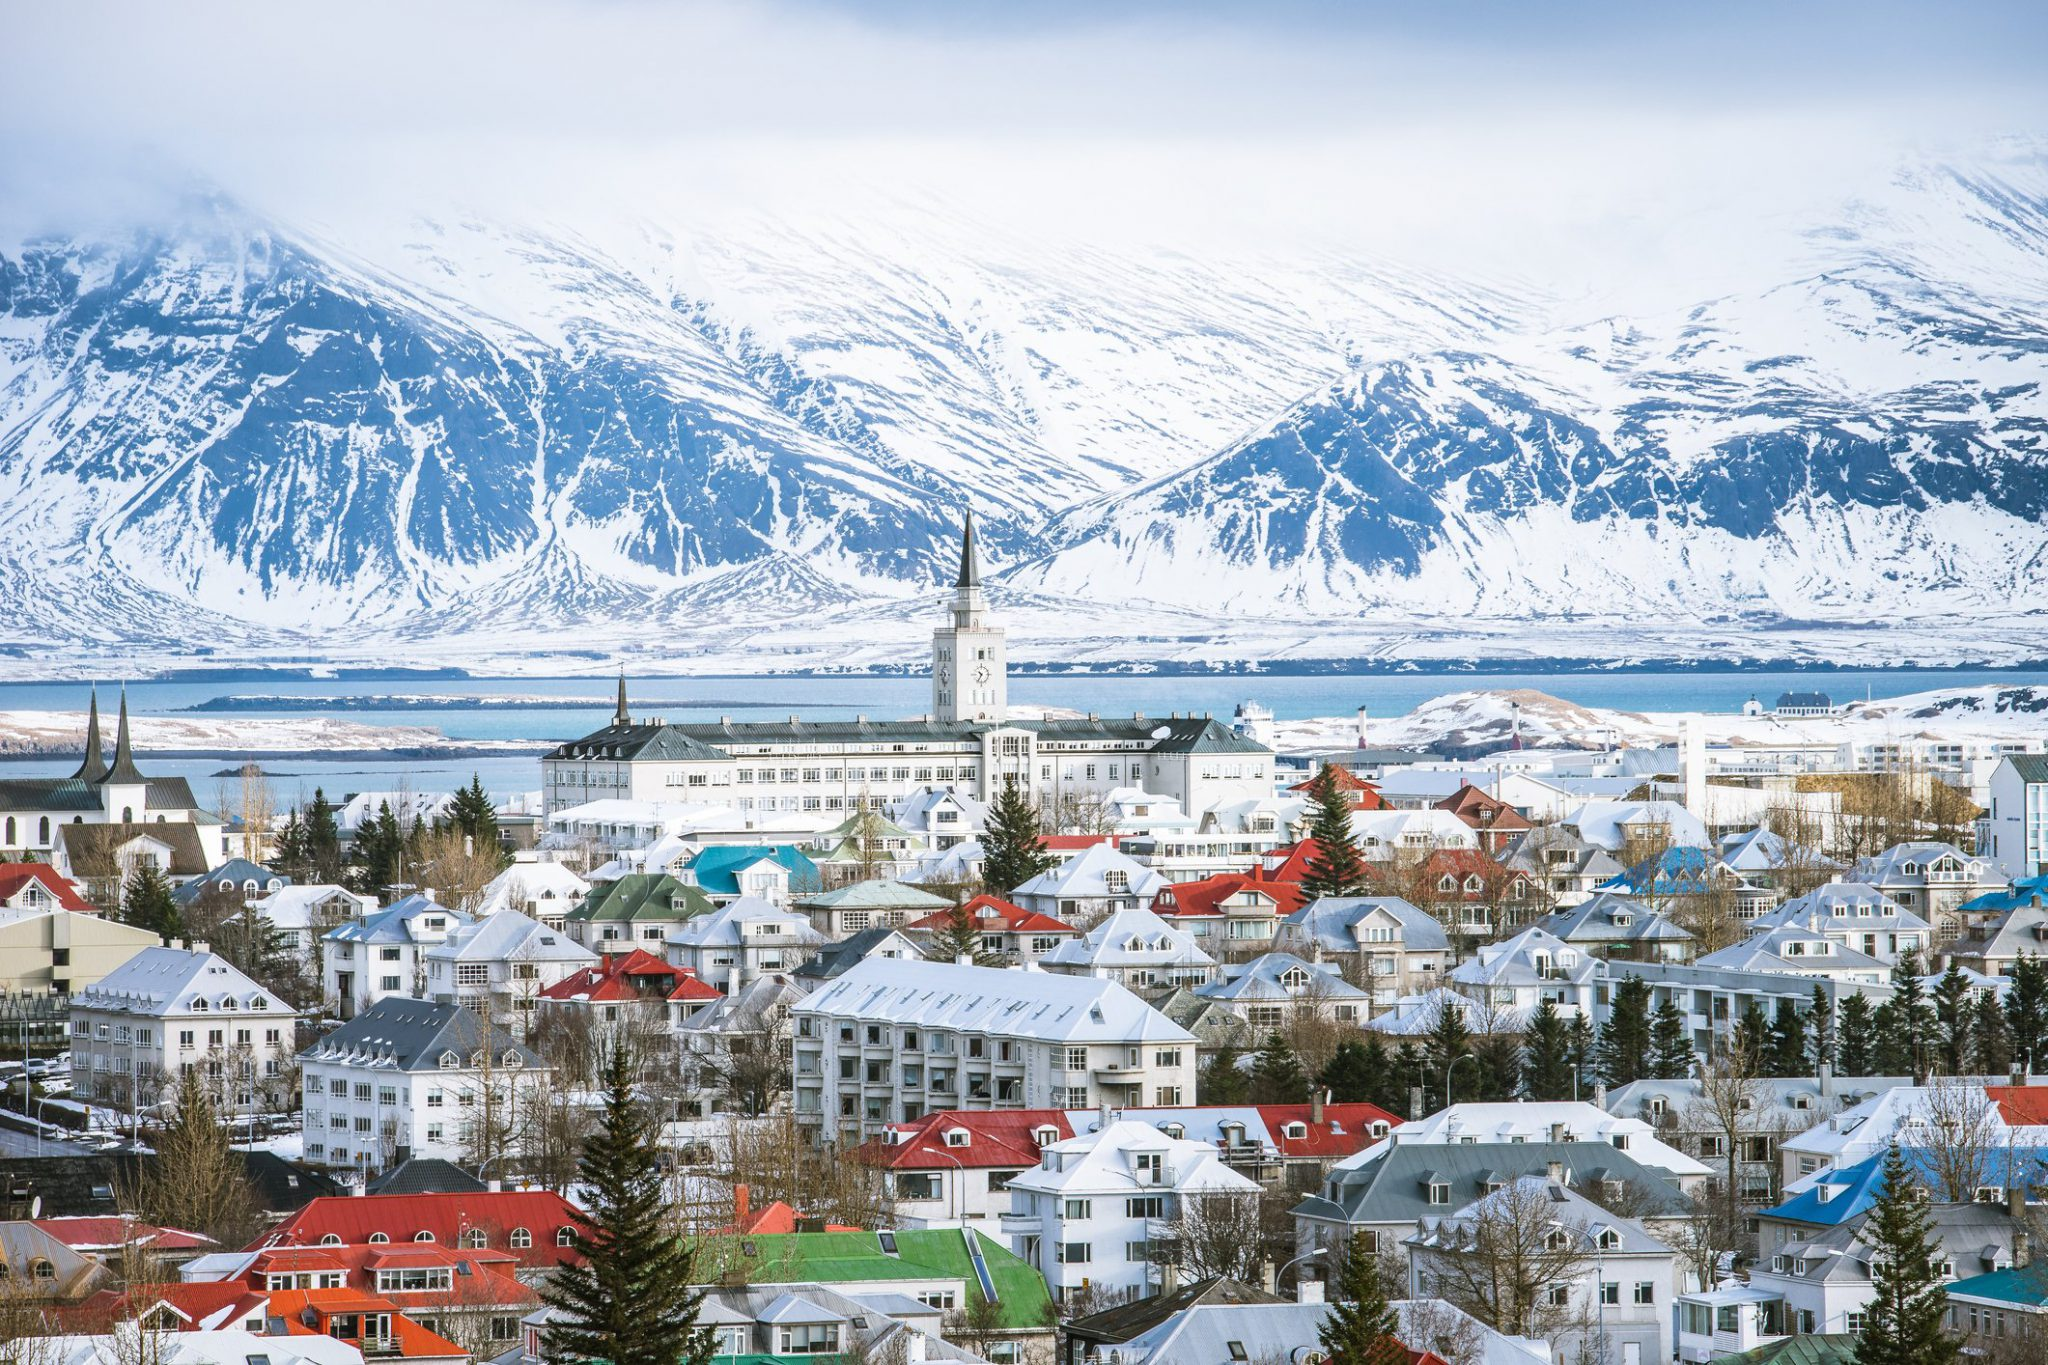 Reykjavik, Iceland city with icy mountains in background